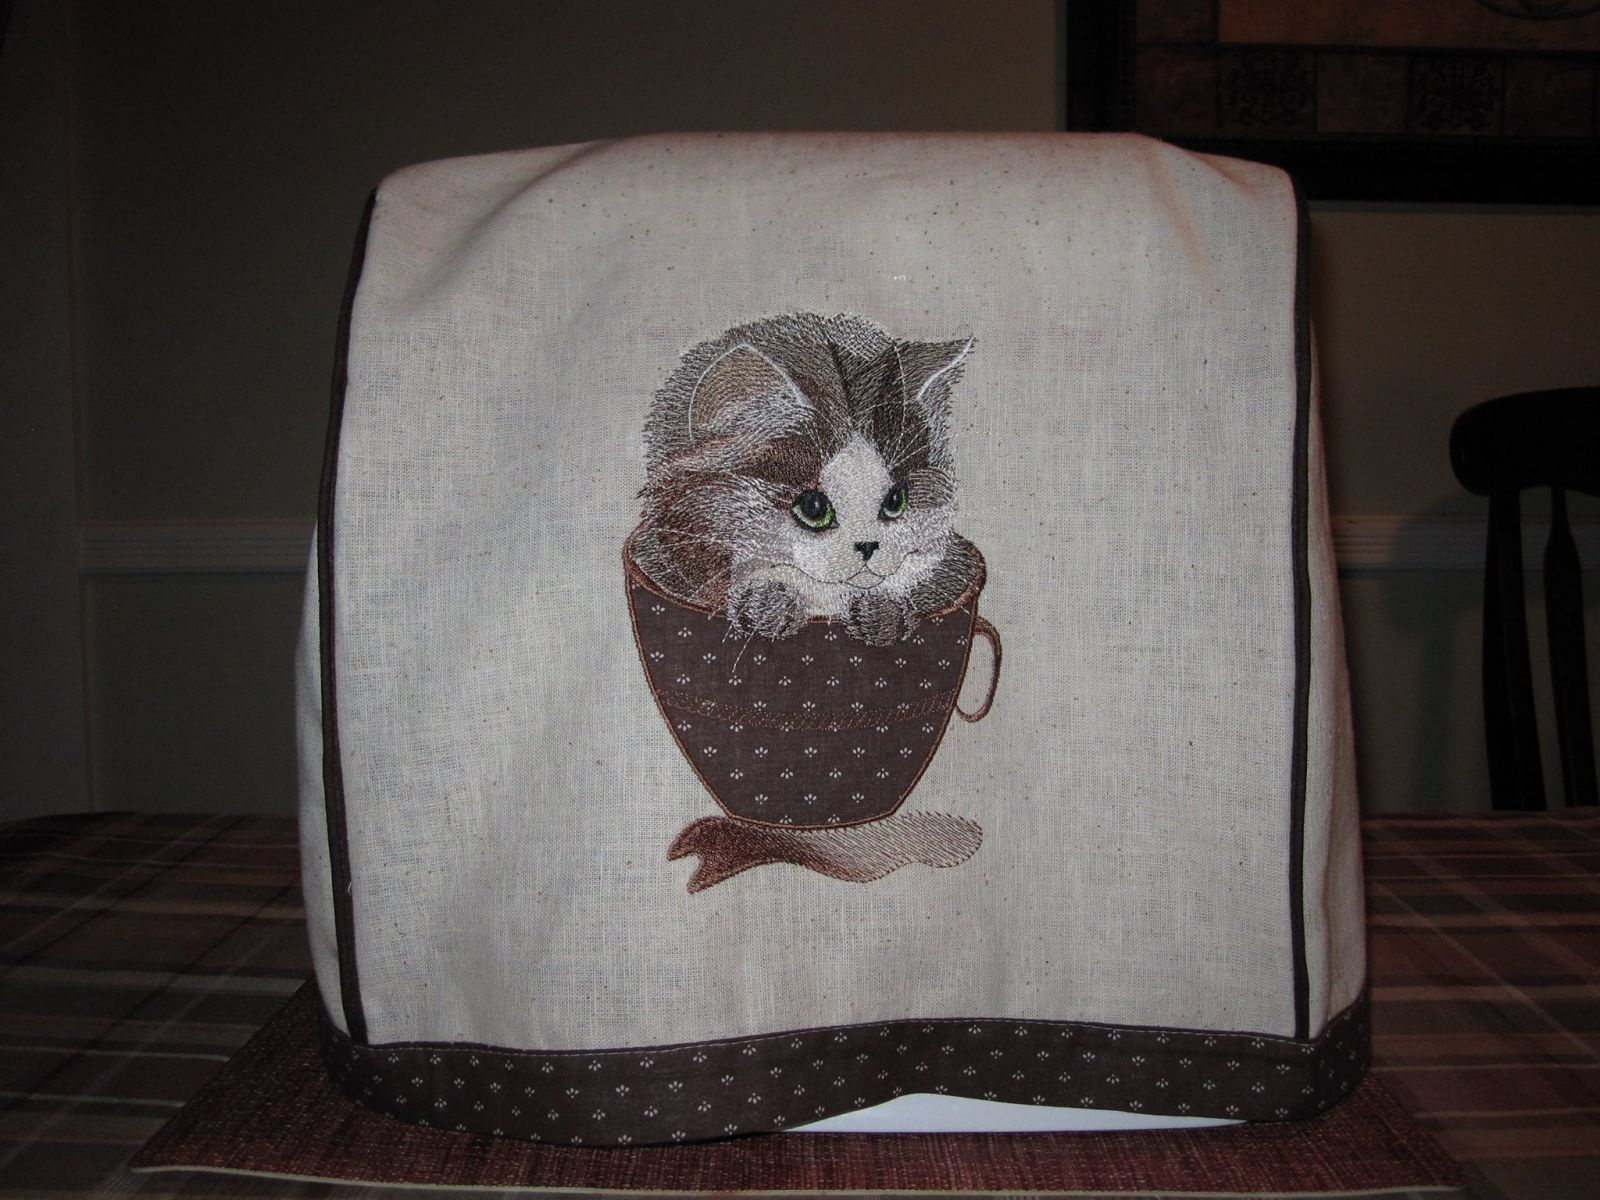 Embroidered Kitchen Cover With Cat Embroidery Design Free